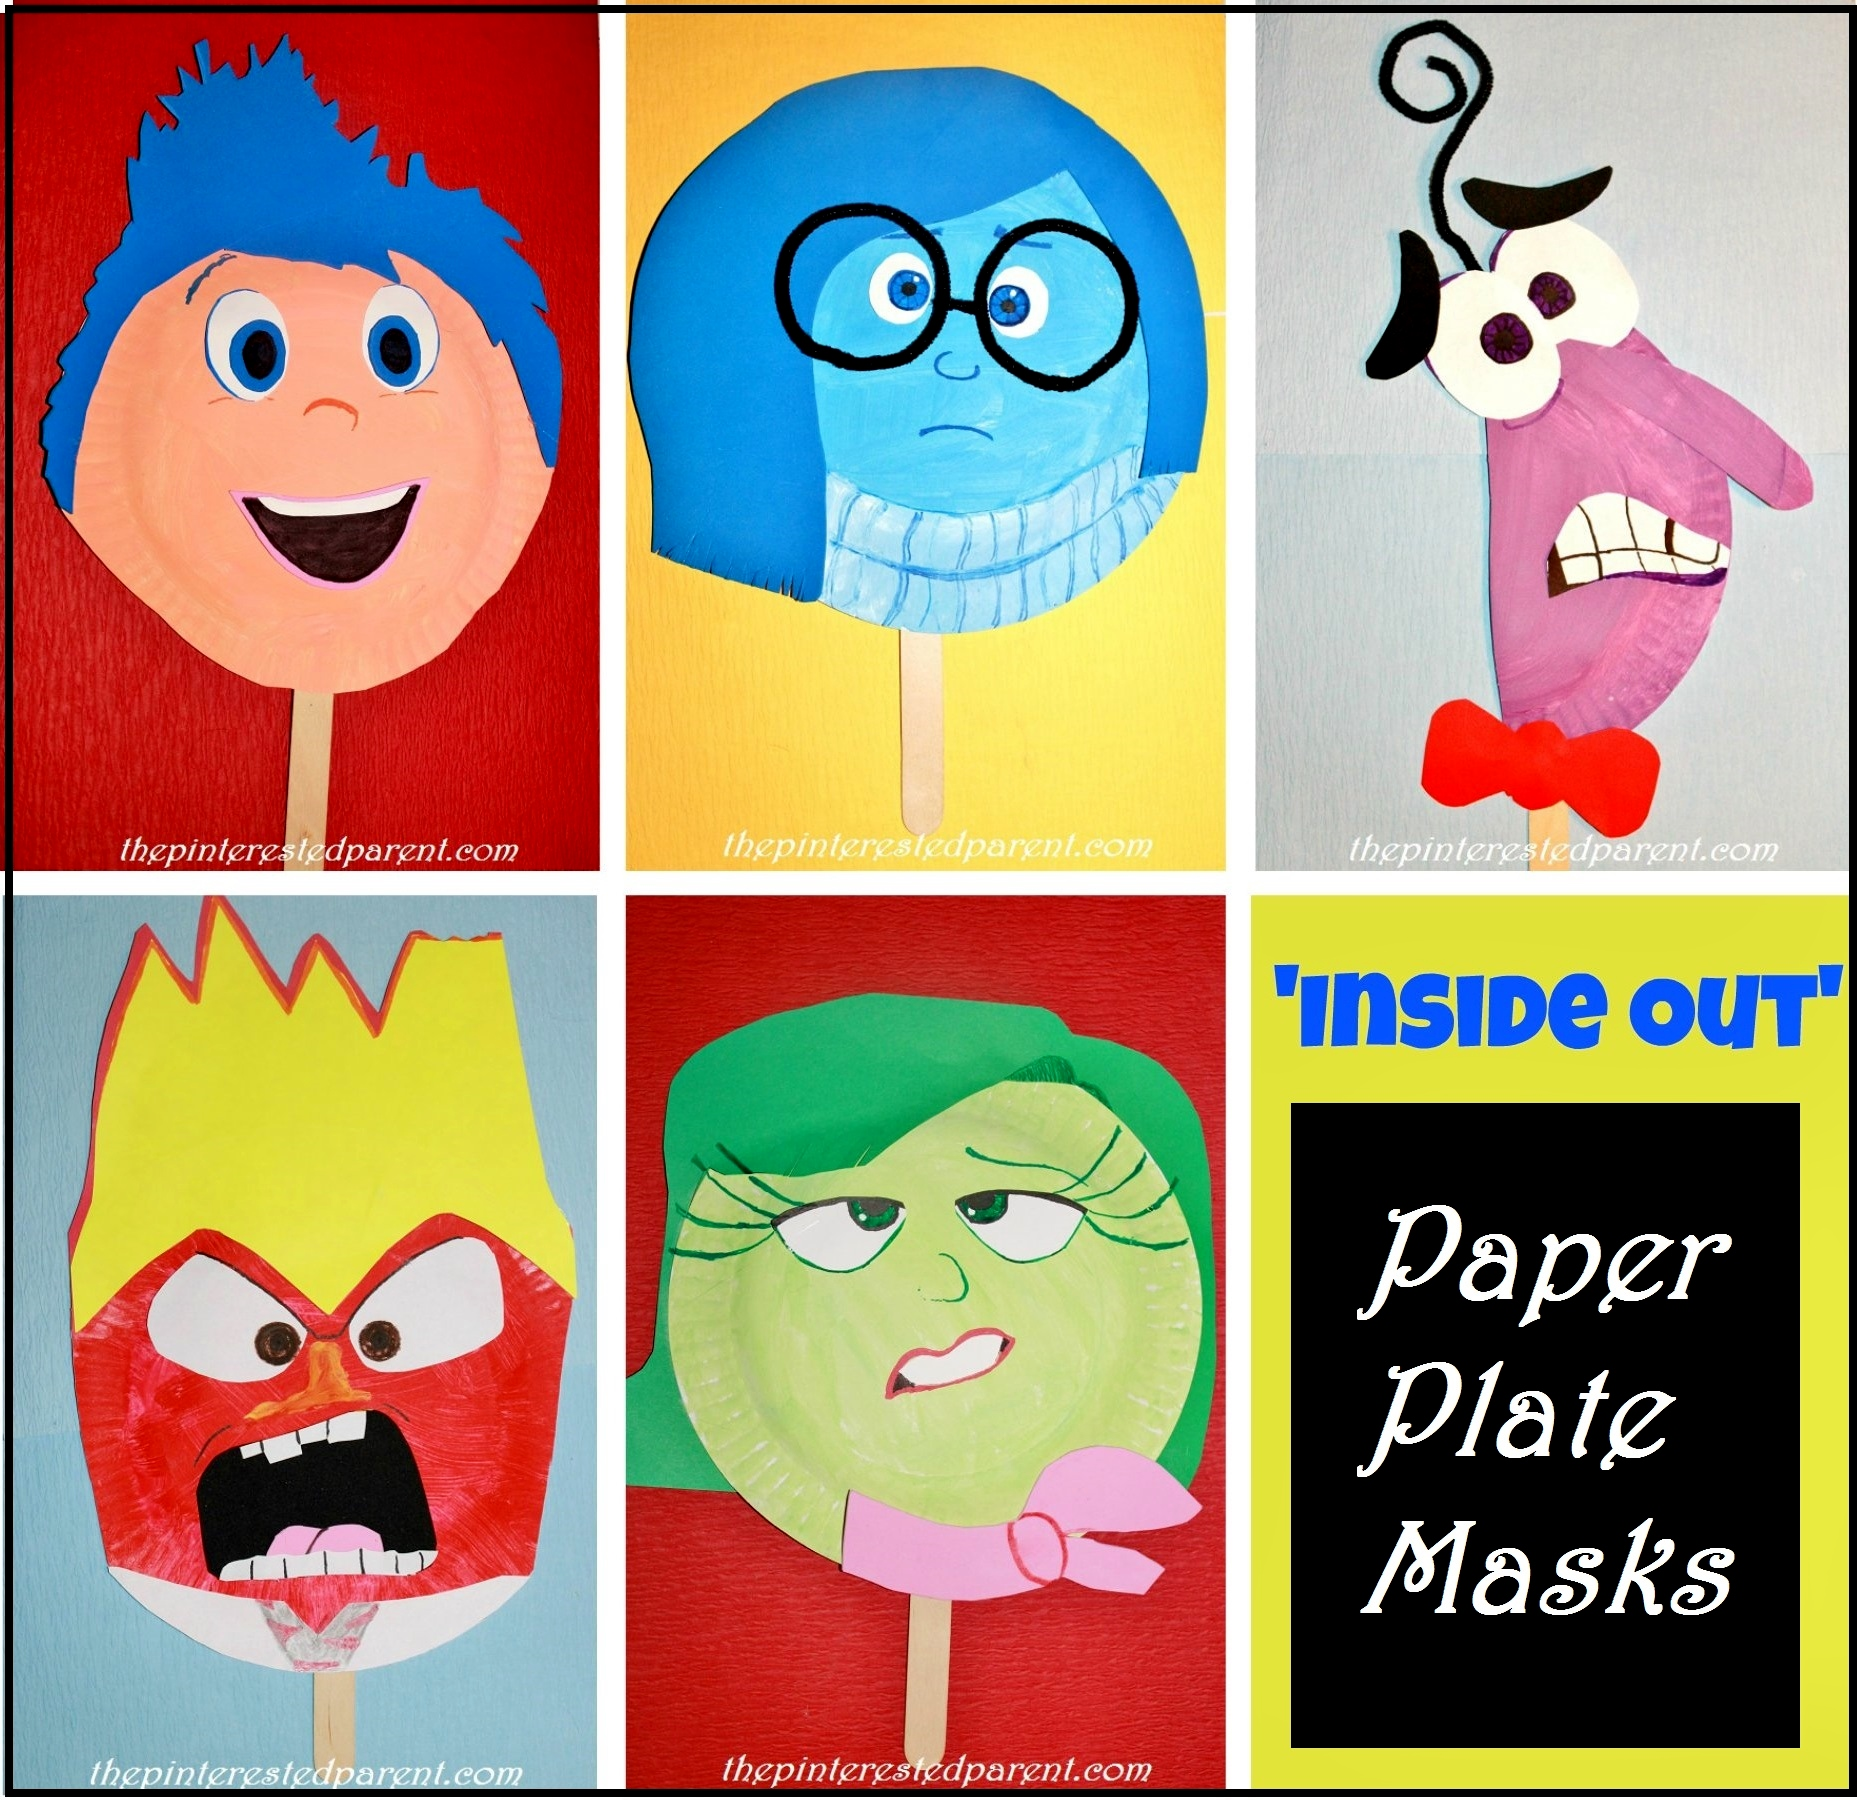 Inside Out  sc 1 st  The Pinterested Parent & Inside Outu0027 Paper Plate Masks u2013 The Pinterested Parent